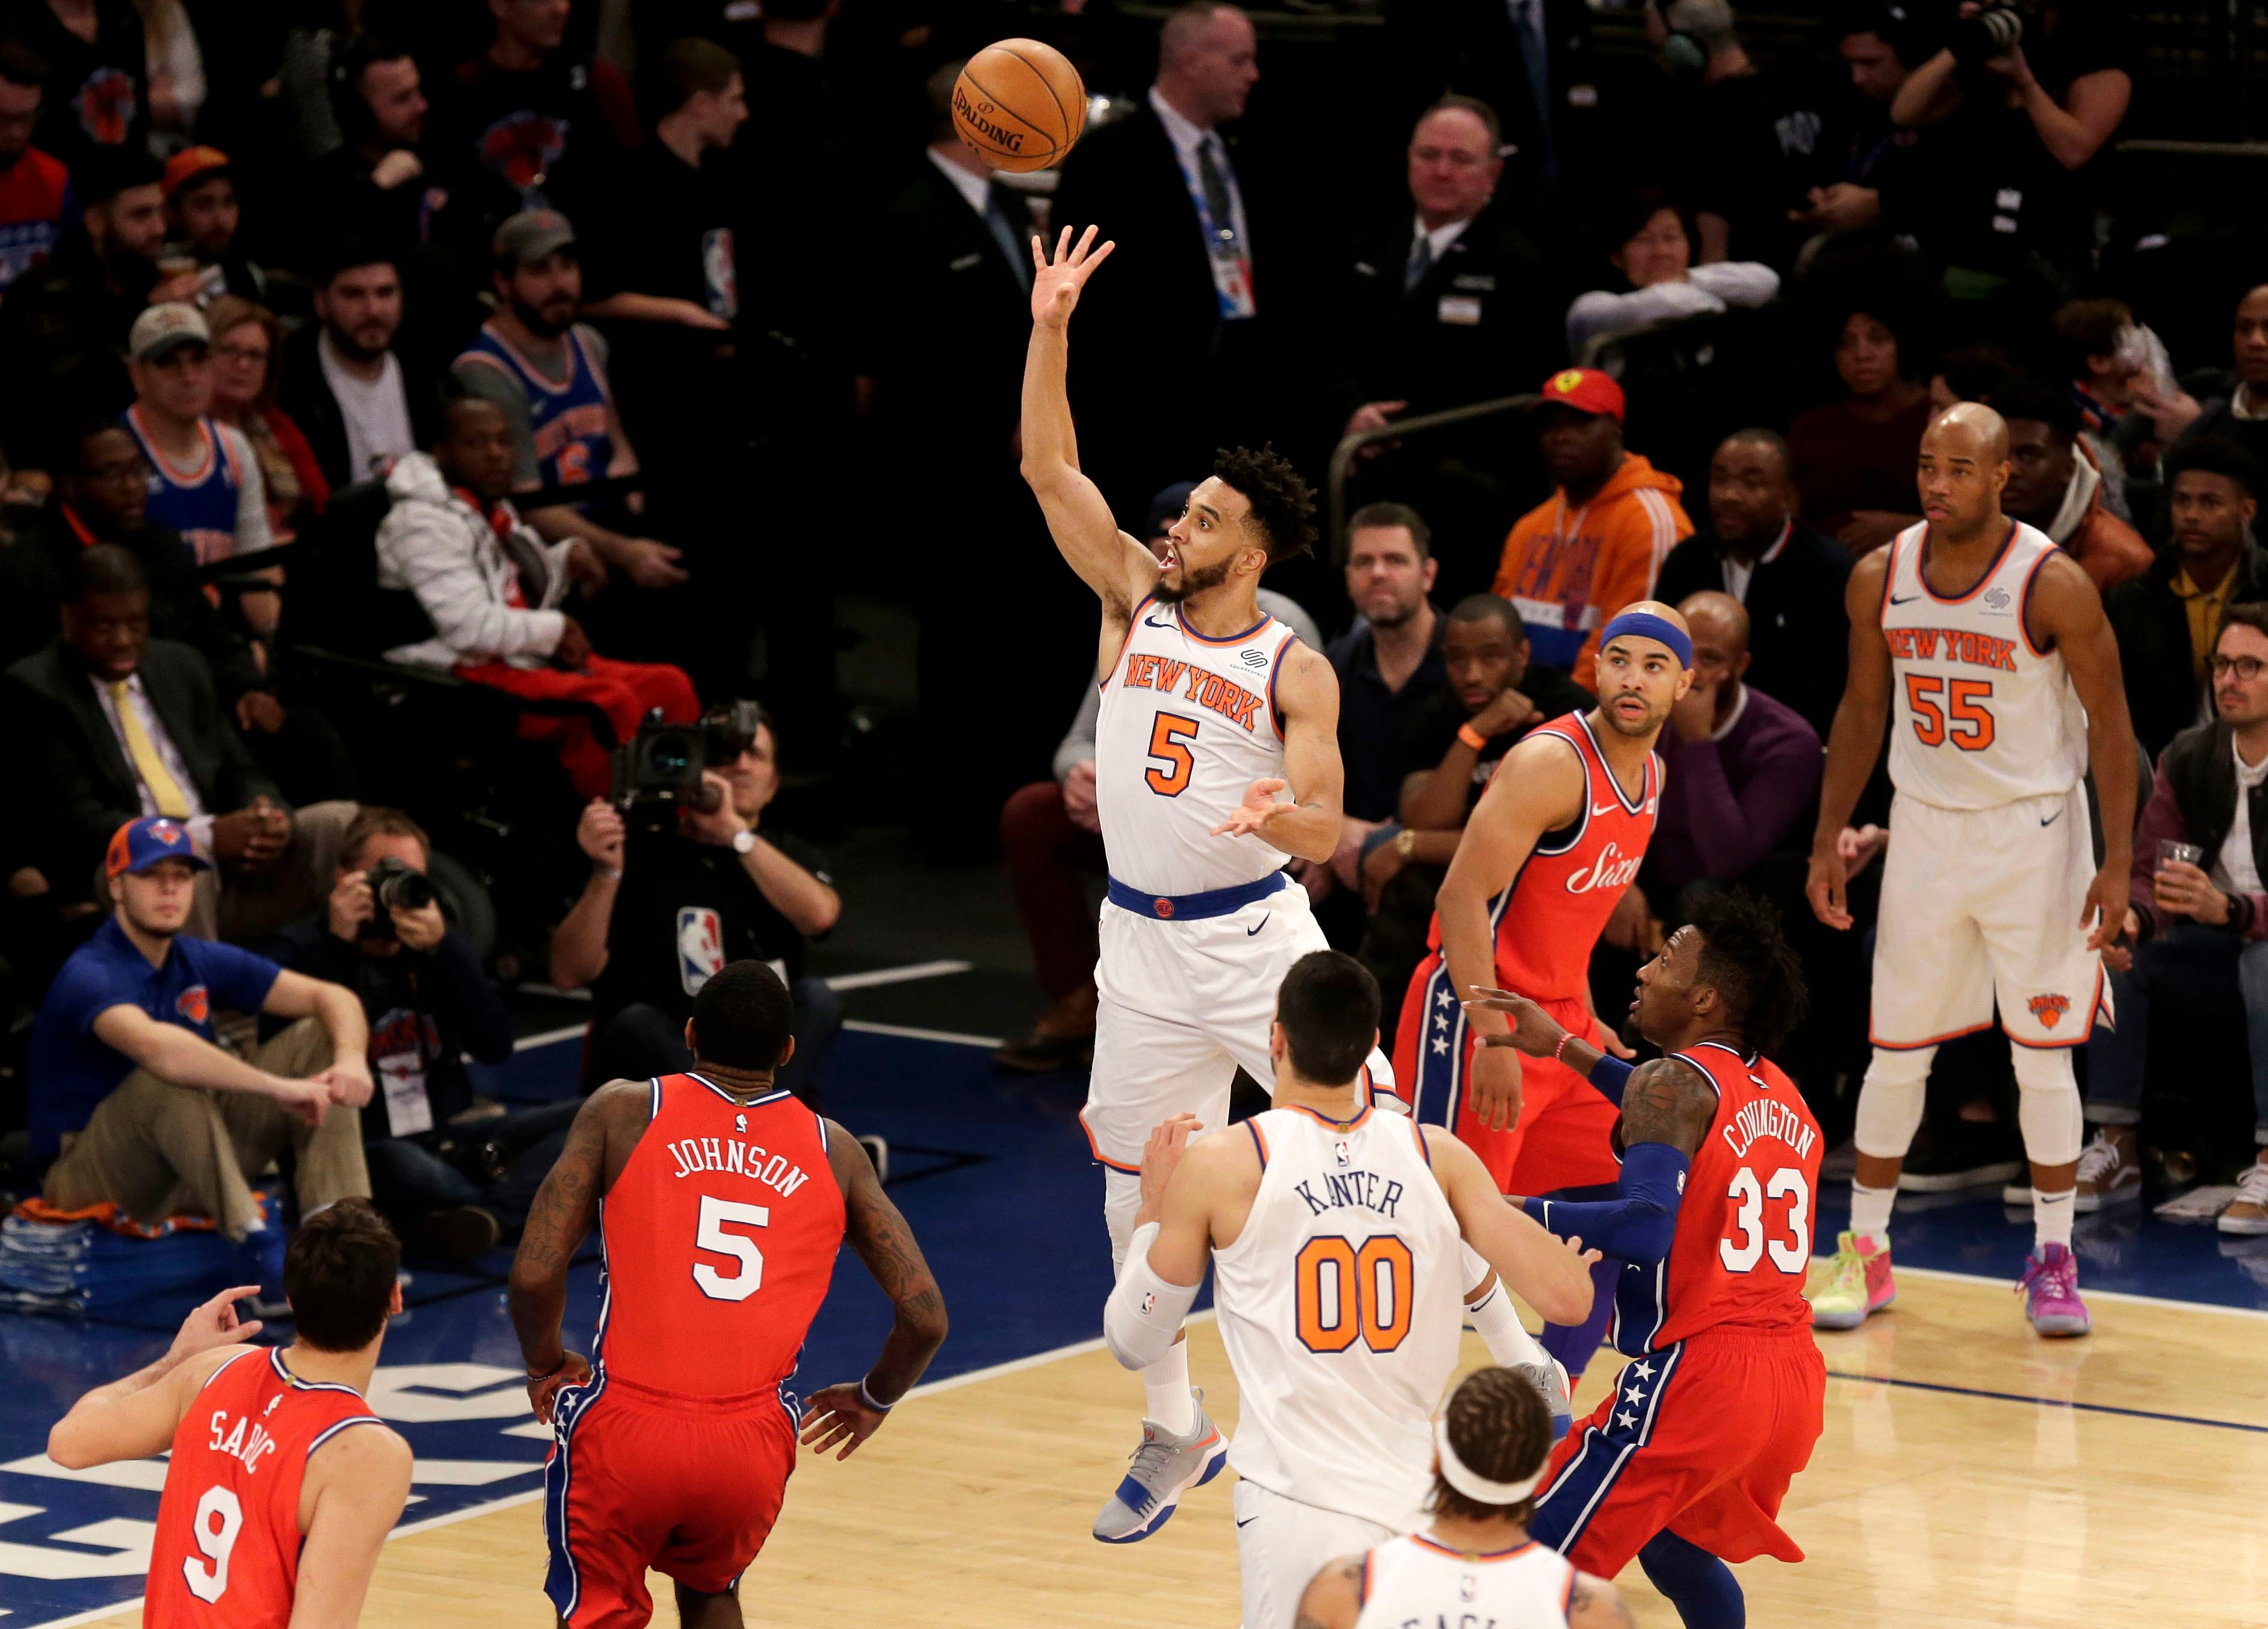 New York Knicks' Courtney Lee, center, puts up a shot during the first half of the NBA basketball game against the Philadelphia 76ers, Monday, Dec. 25, 2017, in New York. (AP Photo/Seth Wenig)